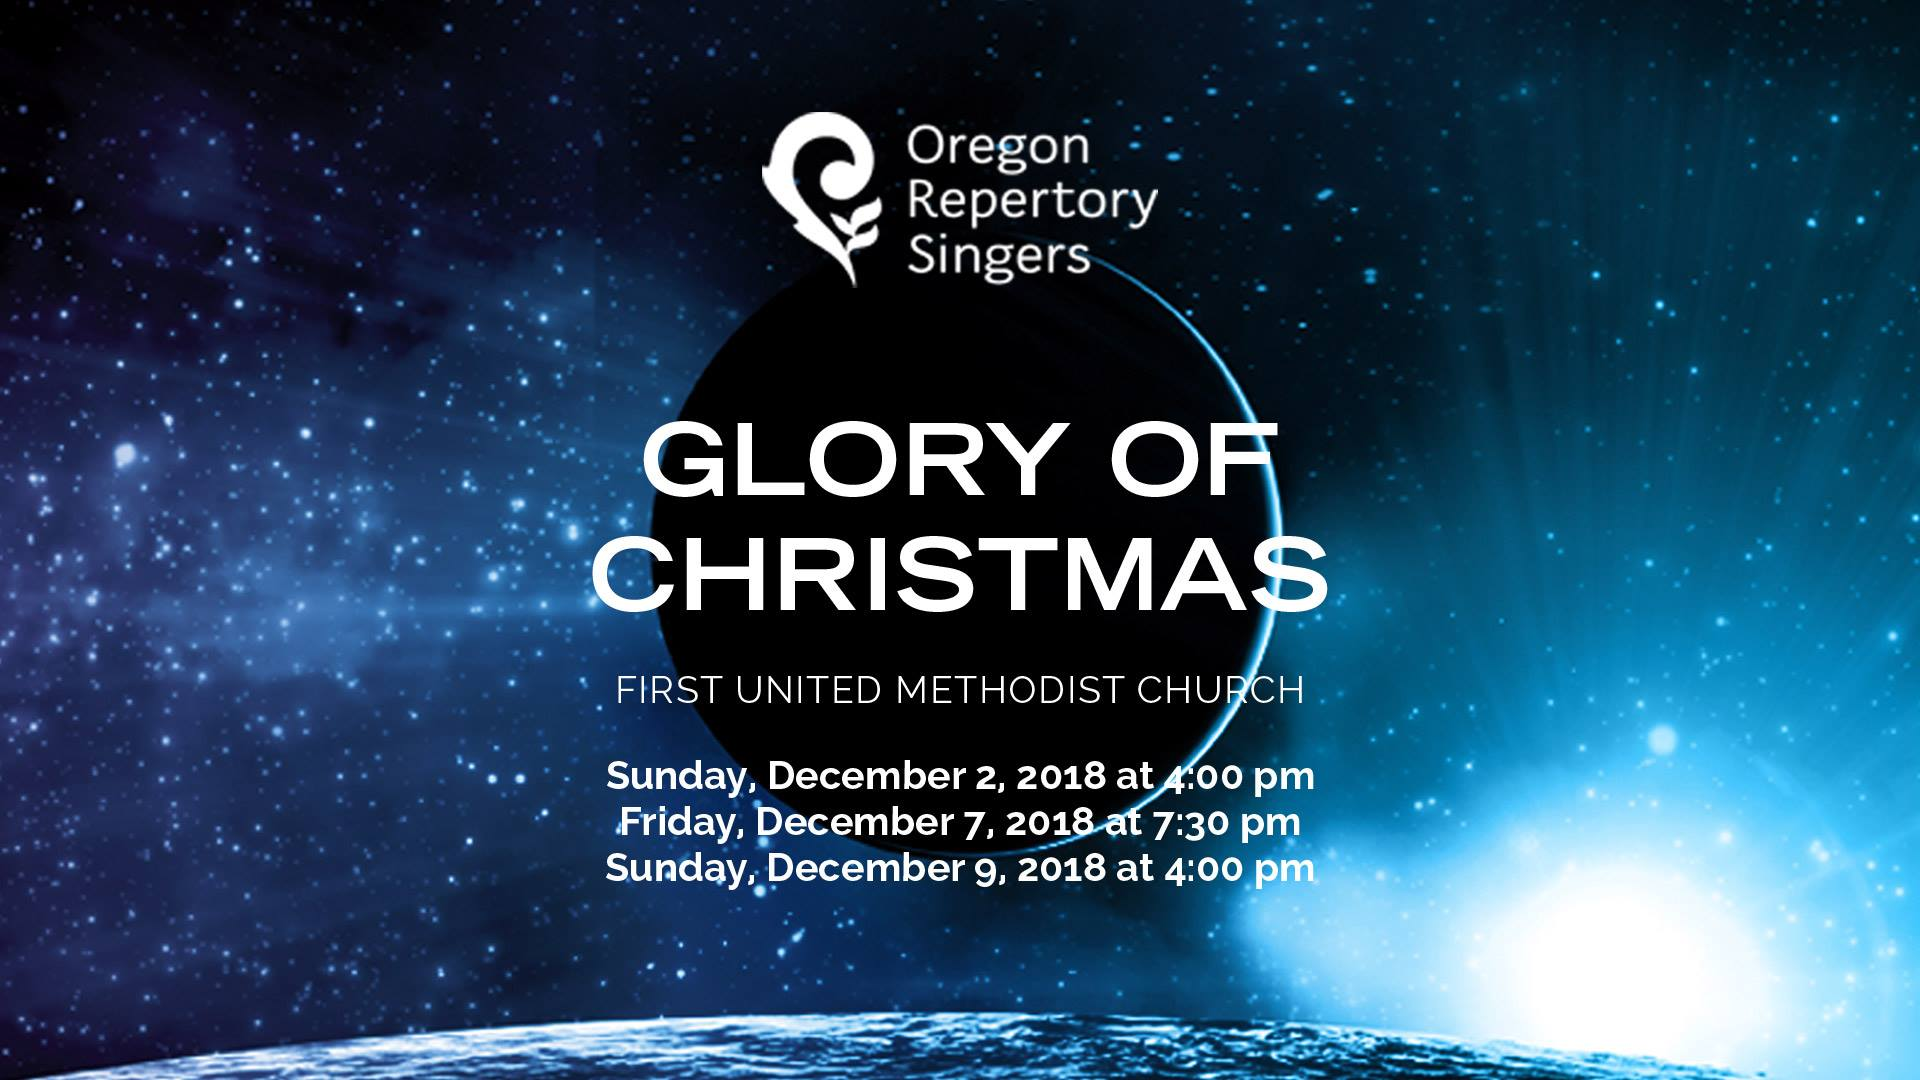 oregon repertory singers: glory of christmas @ first united